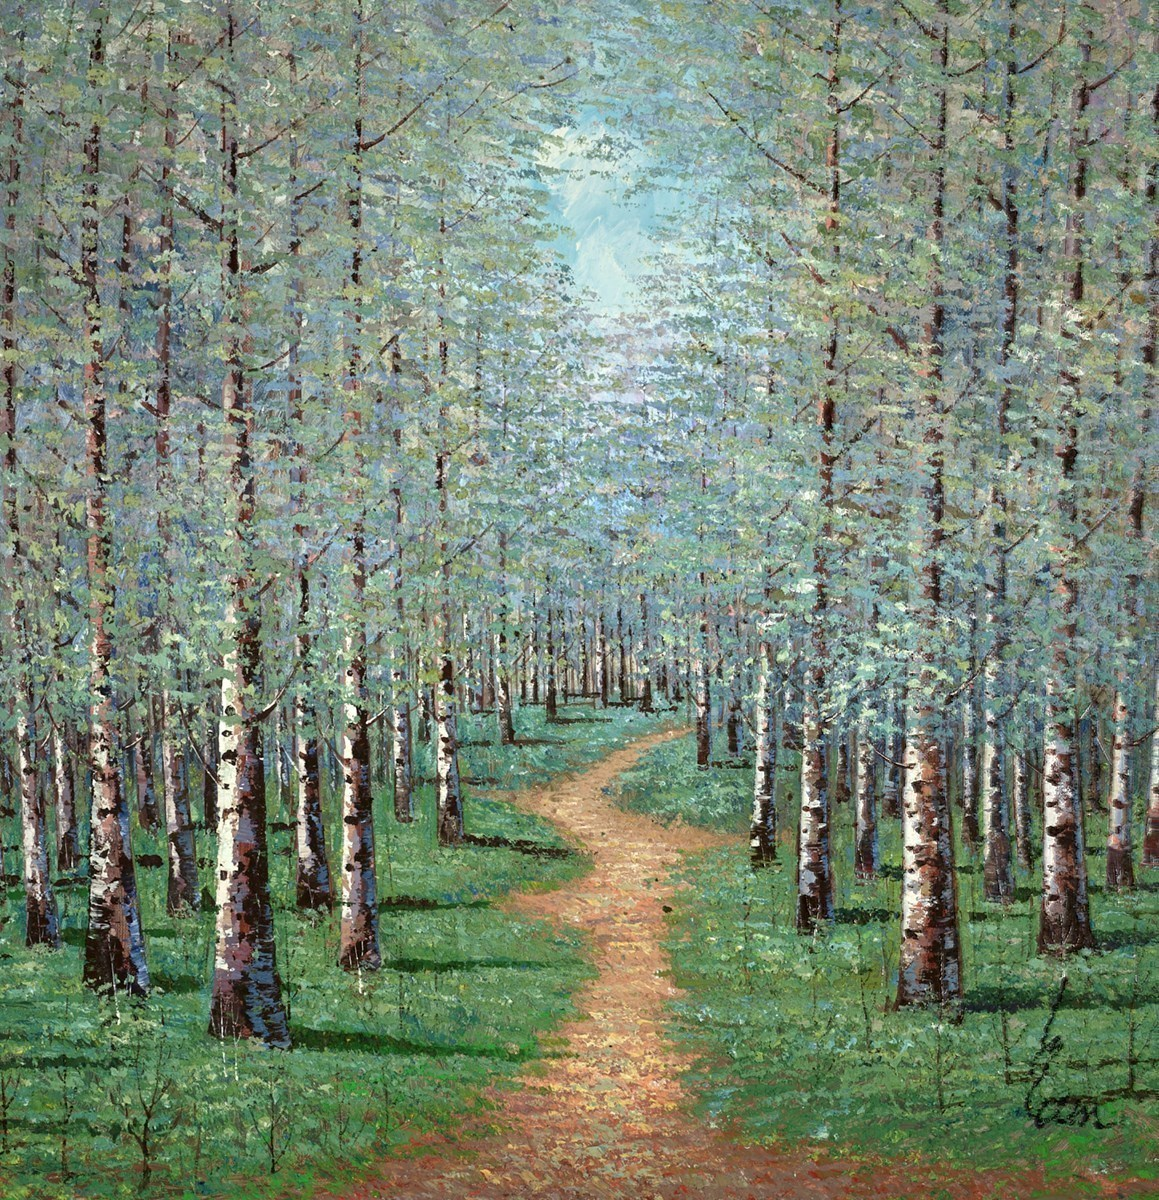 A Walk in the Woods IV by Inam -  sized 59x59 inches. Available from Whitewall Galleries